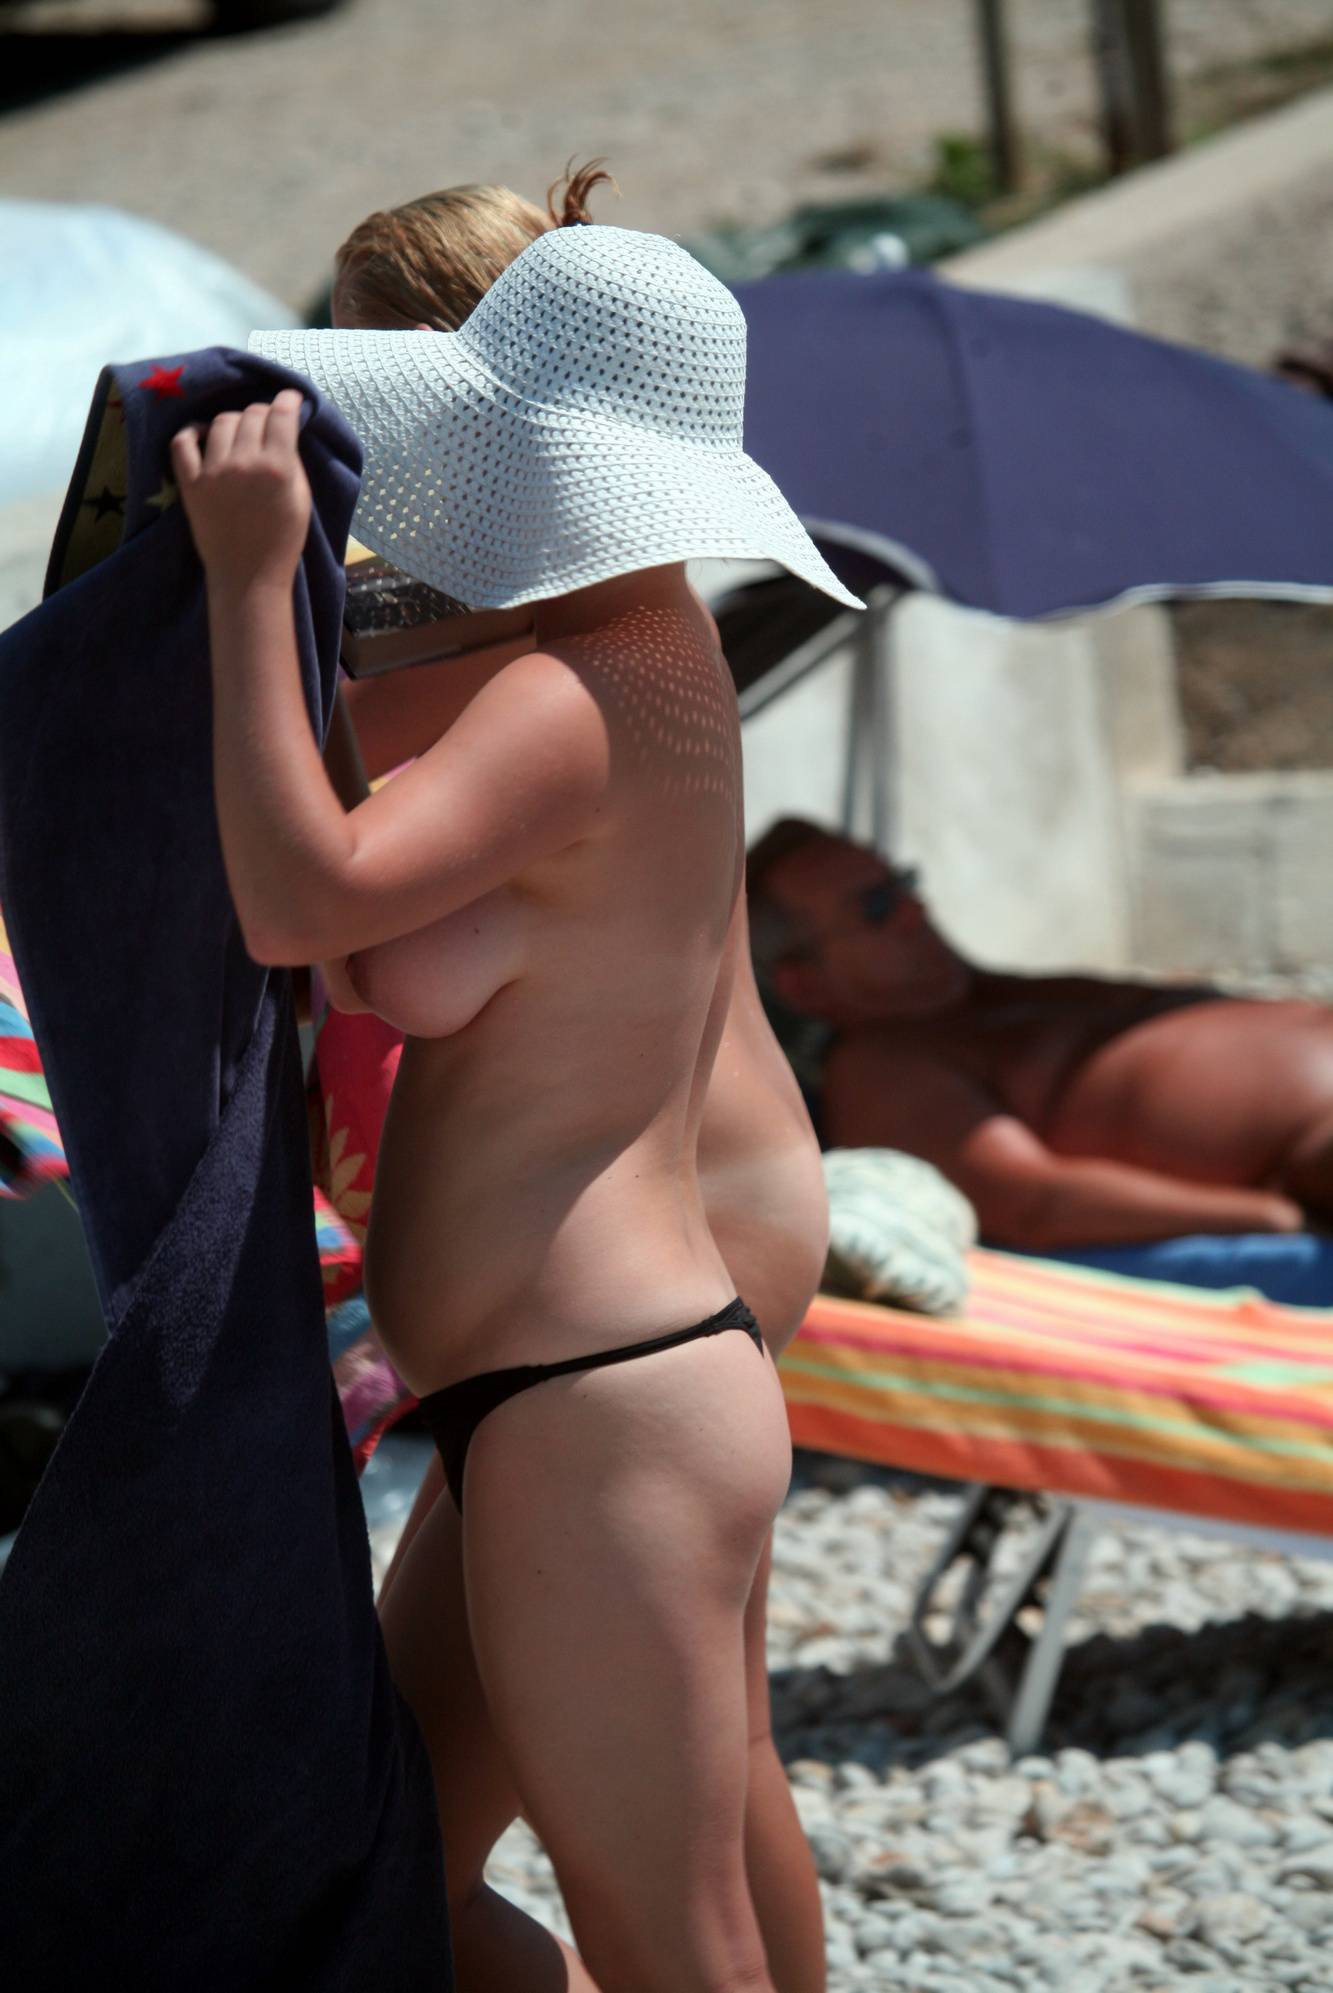 Trail of Two Naturist Girls - 1